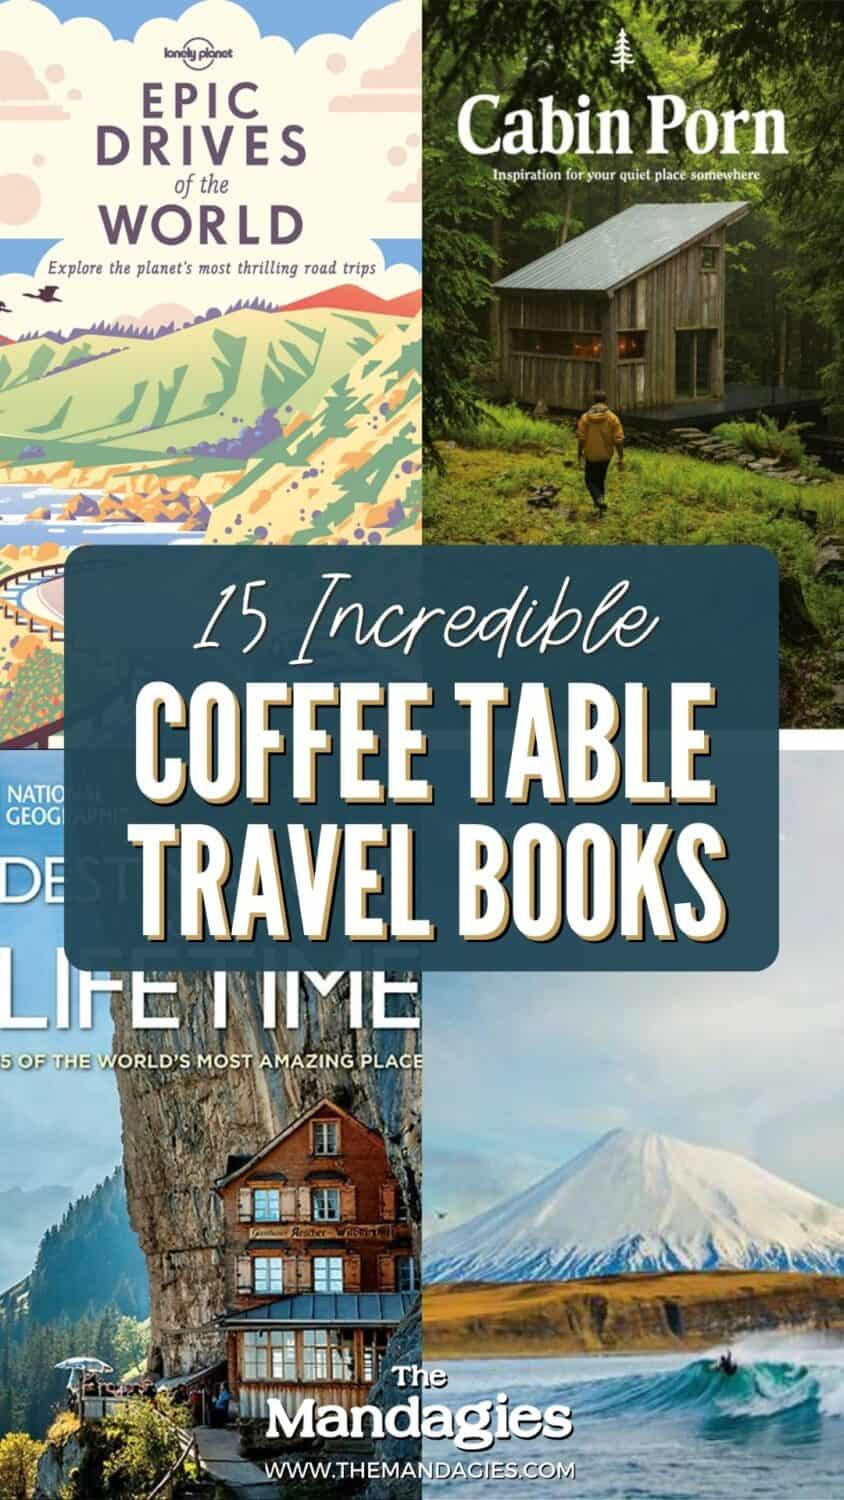 One of the coolest gifts for travelers had got to be coffee table books! They are beautiful, informational, and teeming with inspiration for your next adventure! Browse the best coffee table travel books, from beaches to mountains, best hikes, and road trip routes! #roadtrips #wintertravel #winter #giftguide #travelgiftguide #christmas #xmas #christmasgifts #gifting #giftideas #travelbooks #books #coffeetablebooks